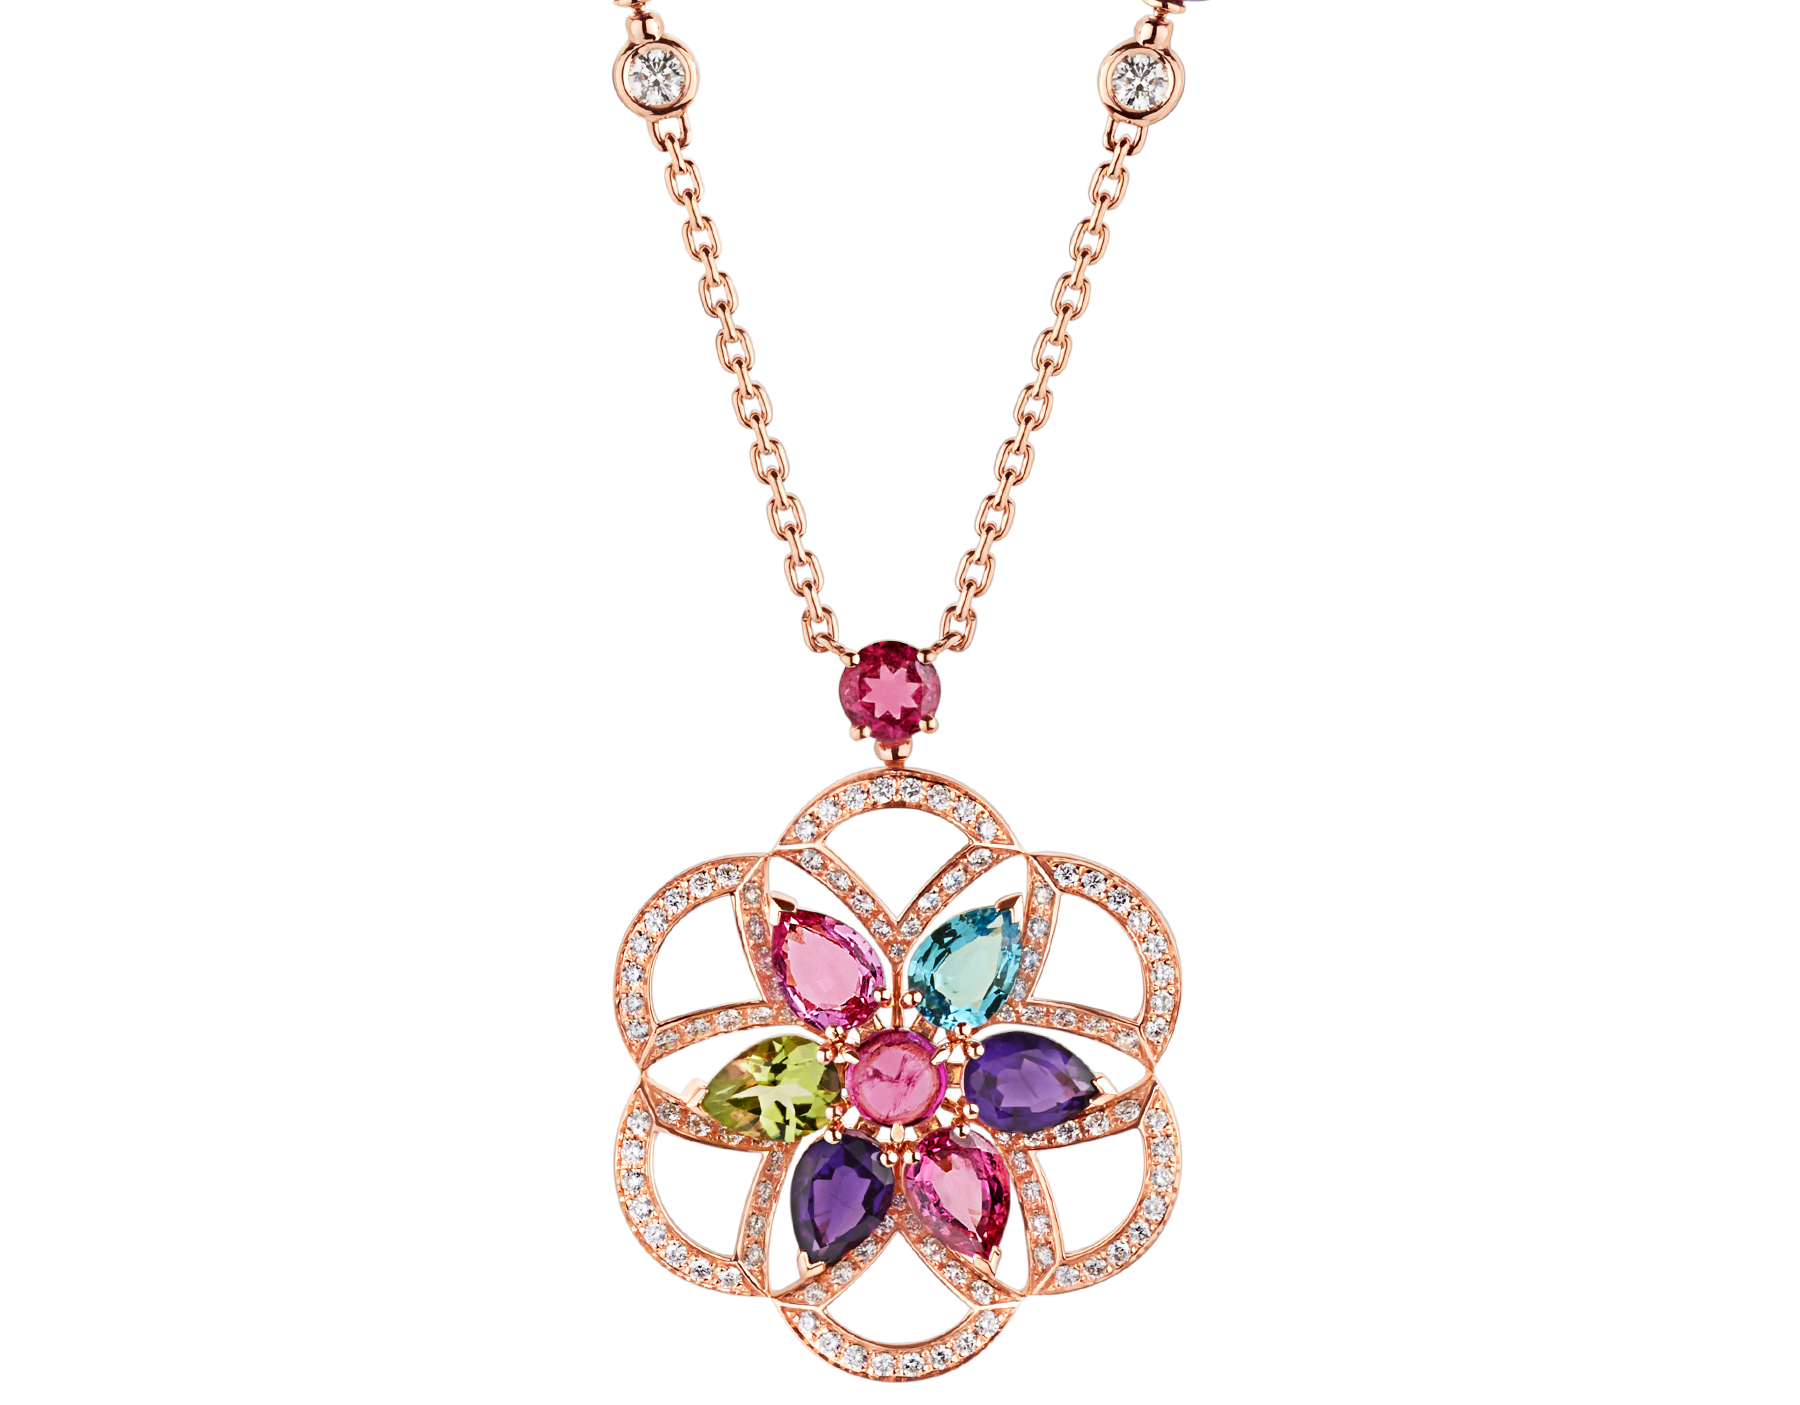 DIVAS' DREAM 18 kt rose gold necklace set with coloured gemstones and pavé diamonds 355617 image 1